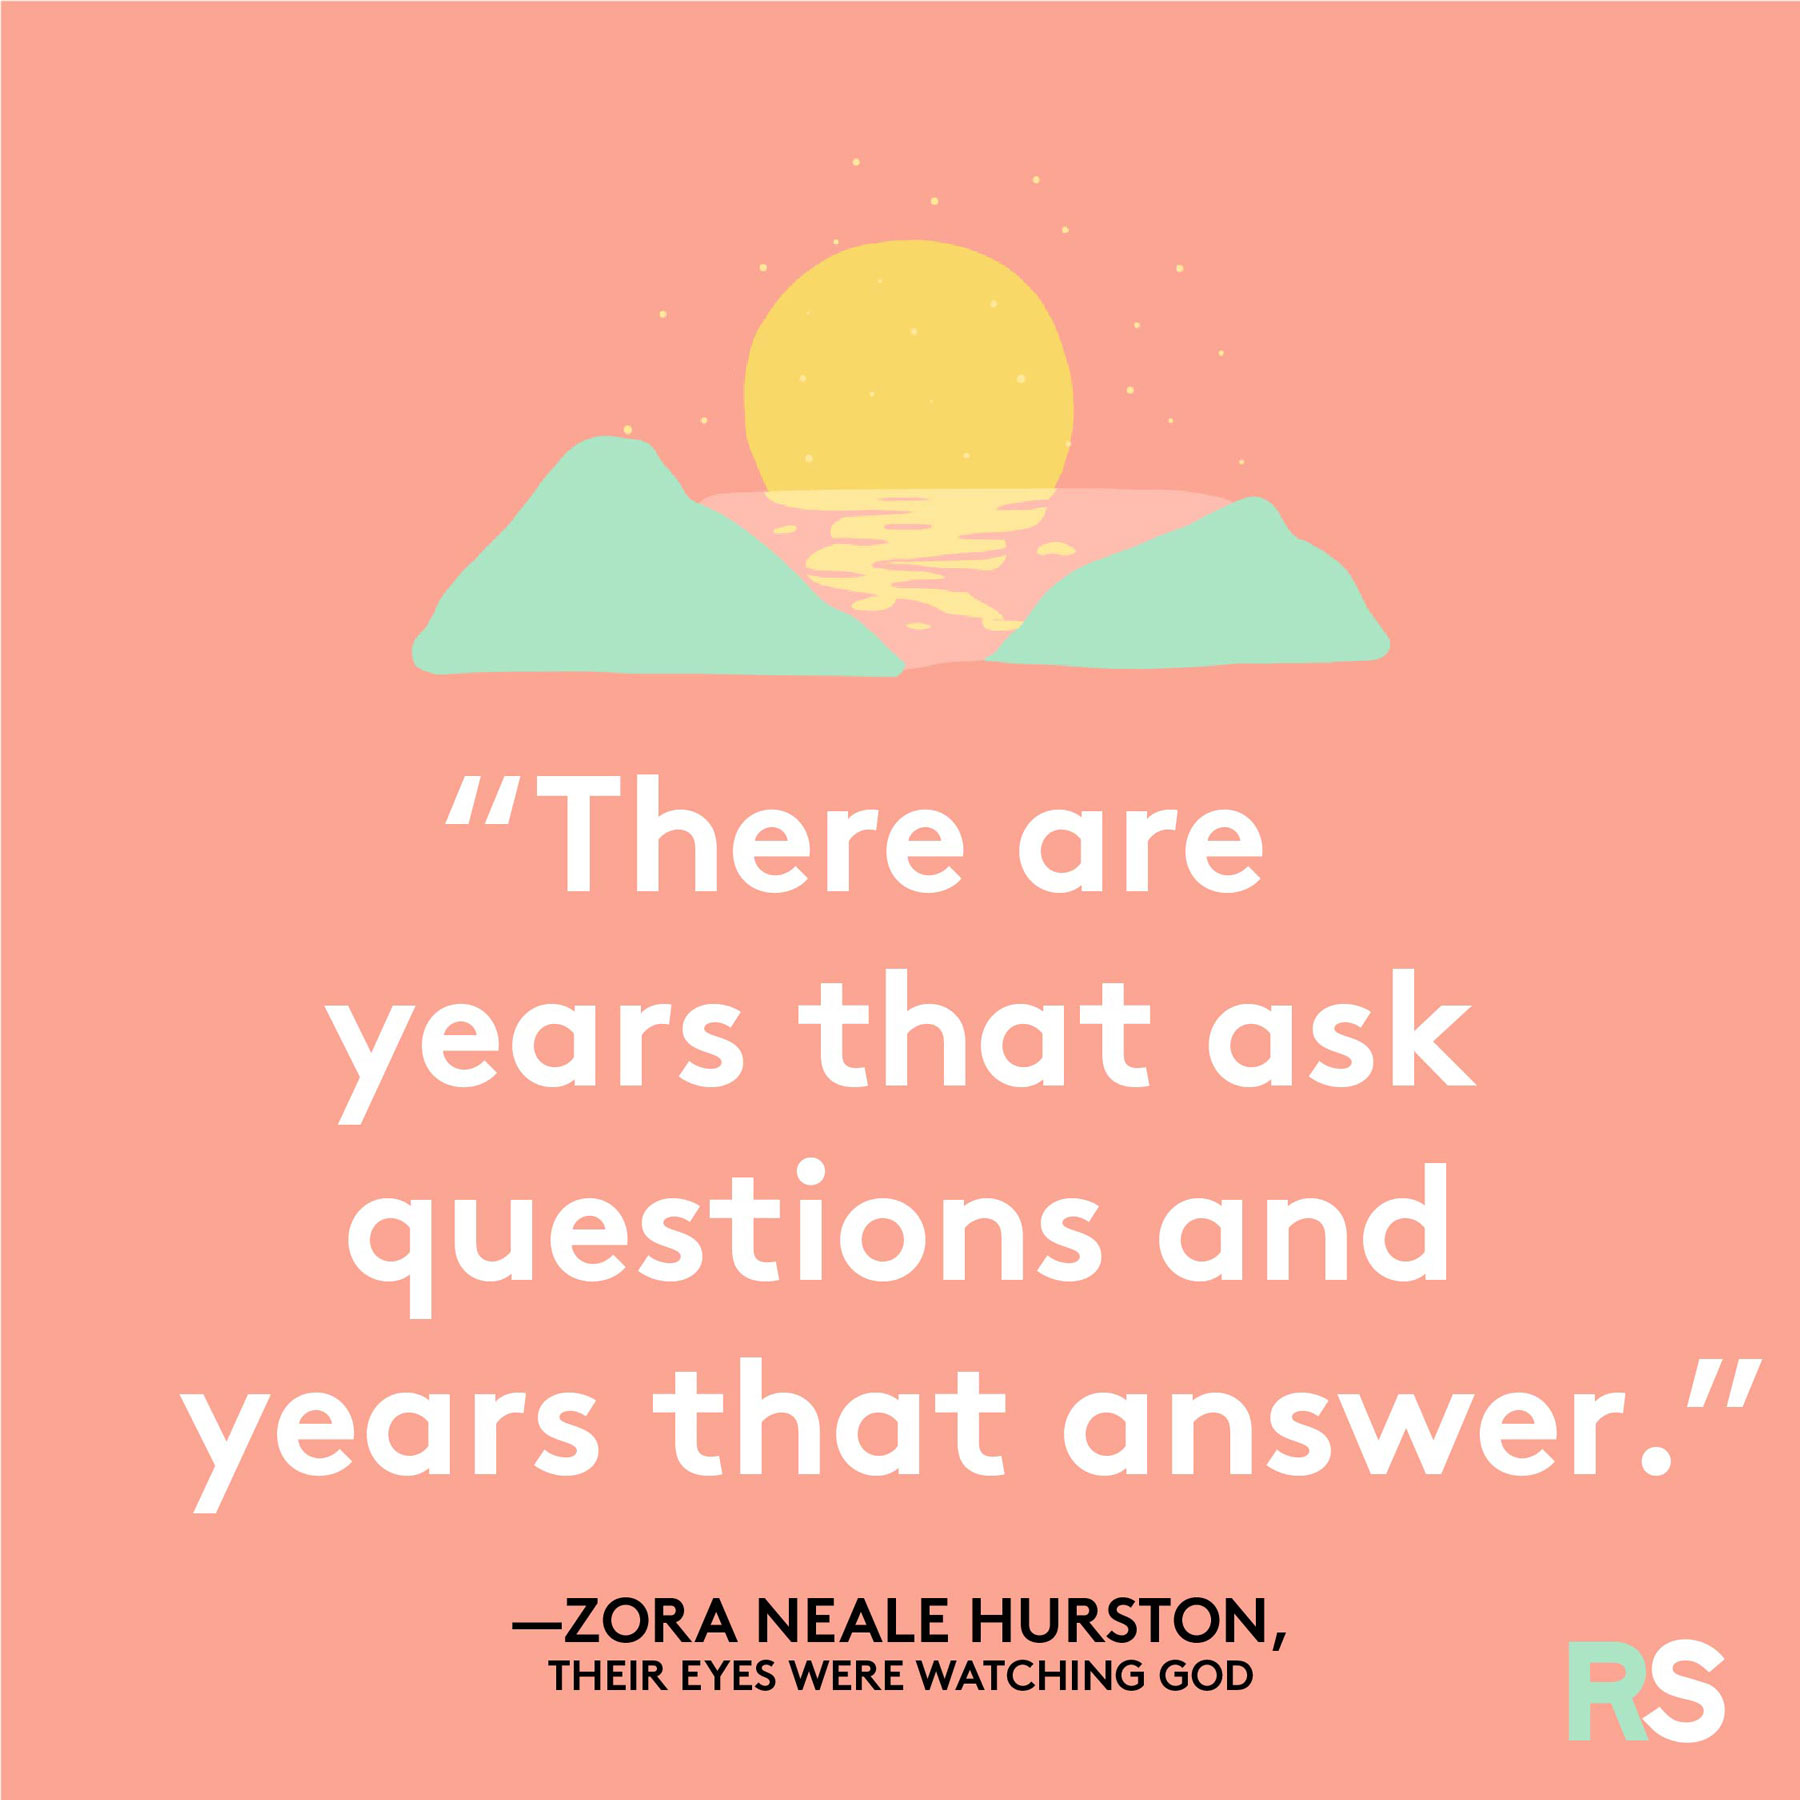 Positive motivating quotes, captions, messages – Zora Neale Hurston Their Eyes Were Watching God quote